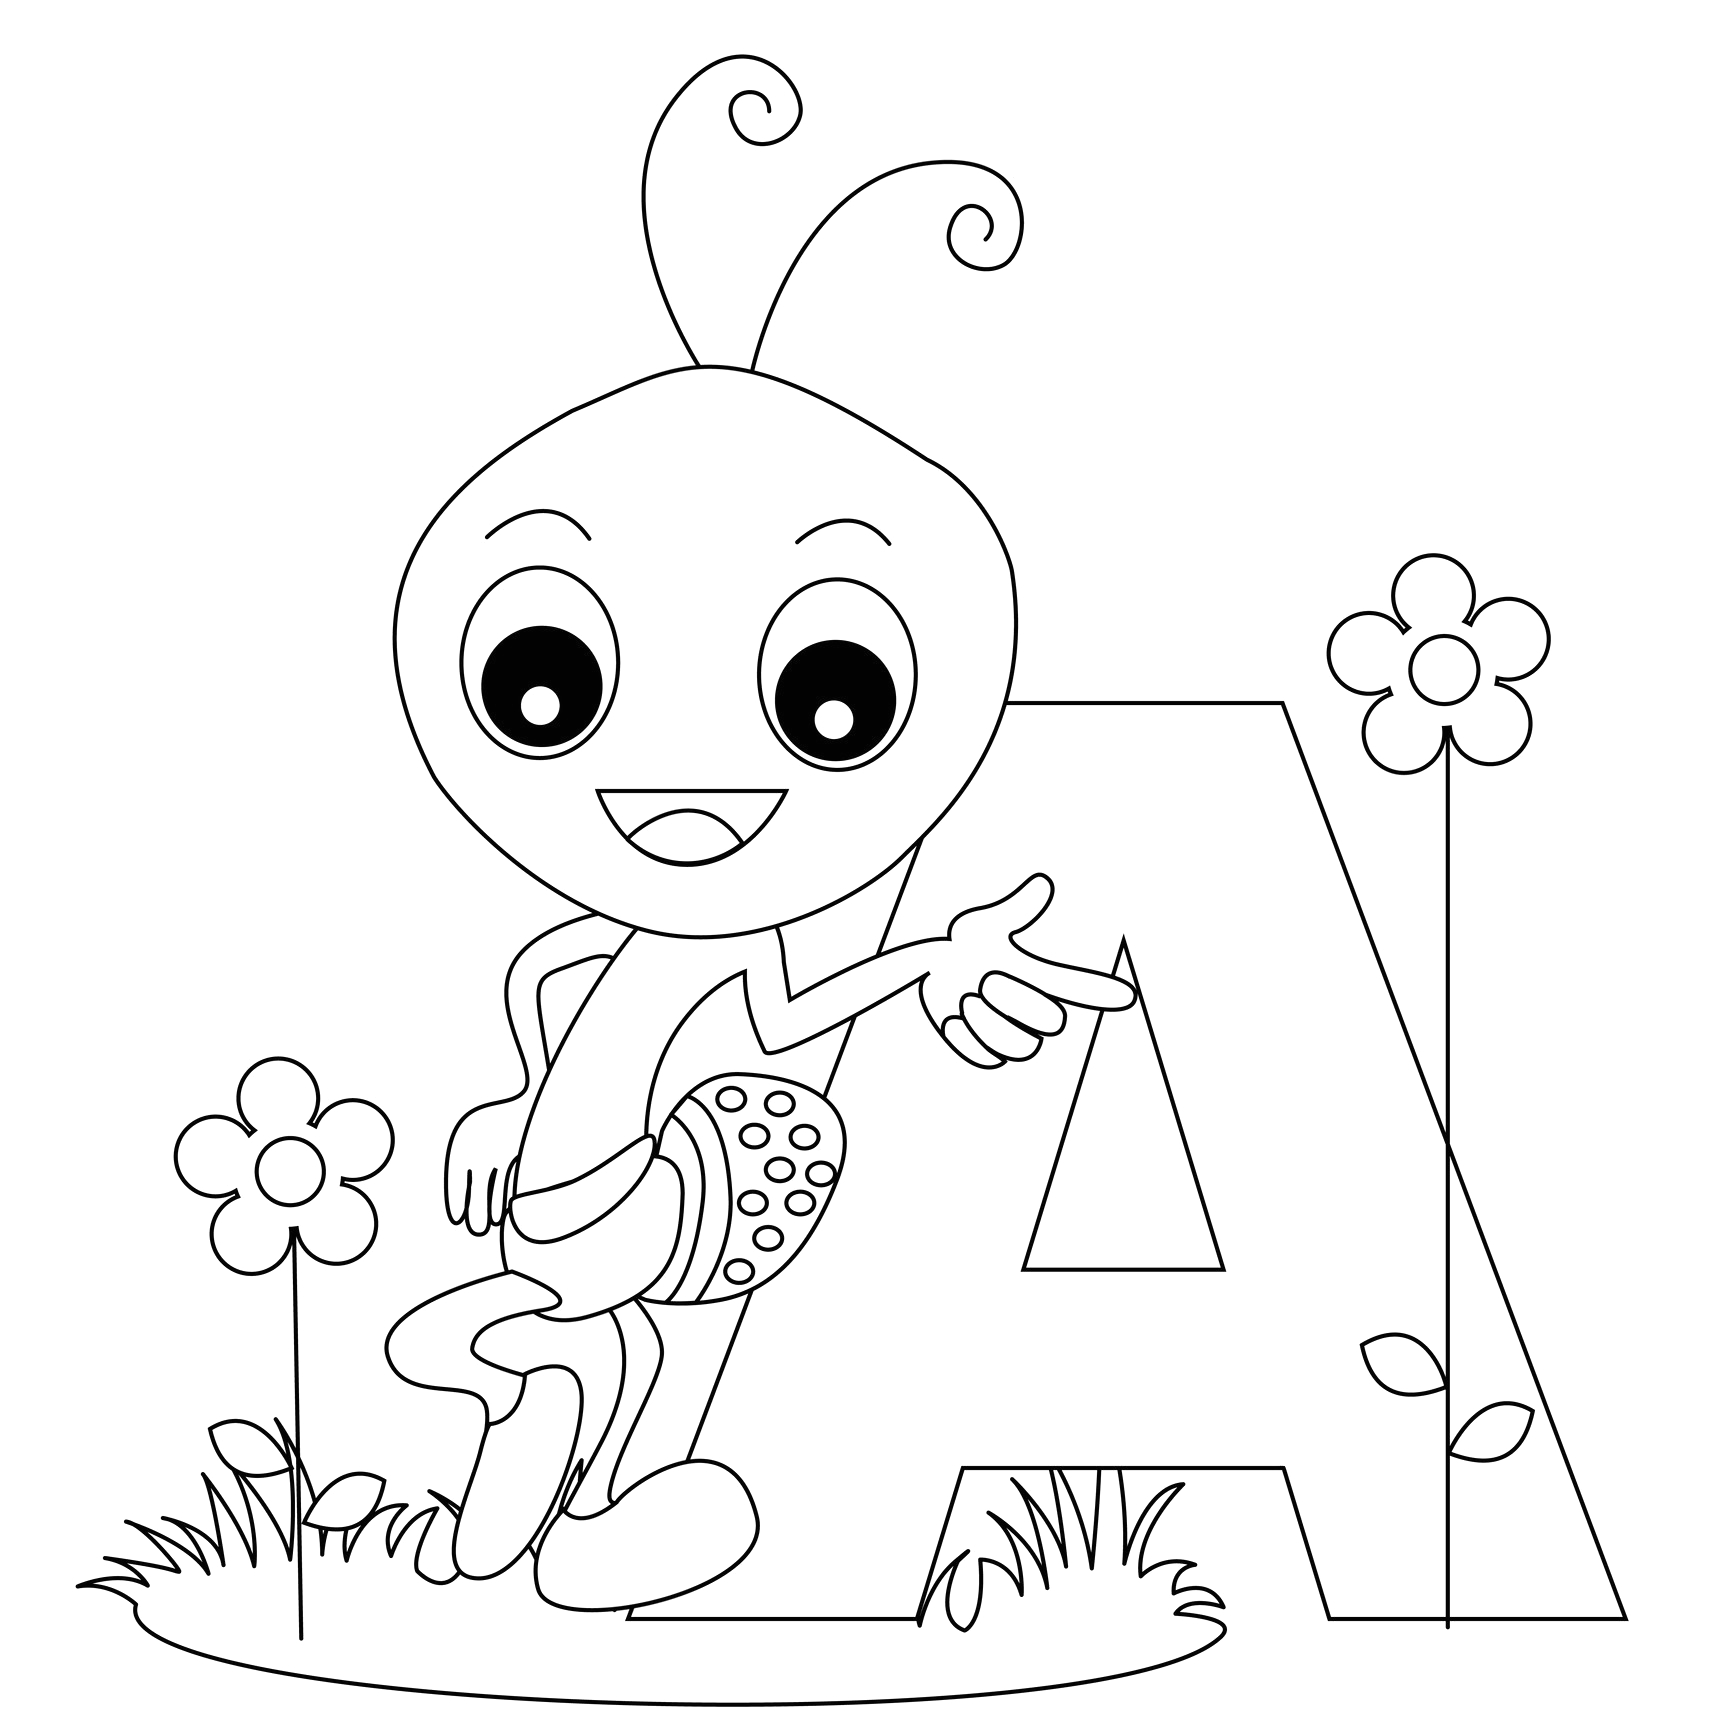 Free Printable Alphabet Coloring Pages for Kids Free Printable Alphabet Coloring Pages for Kids Best